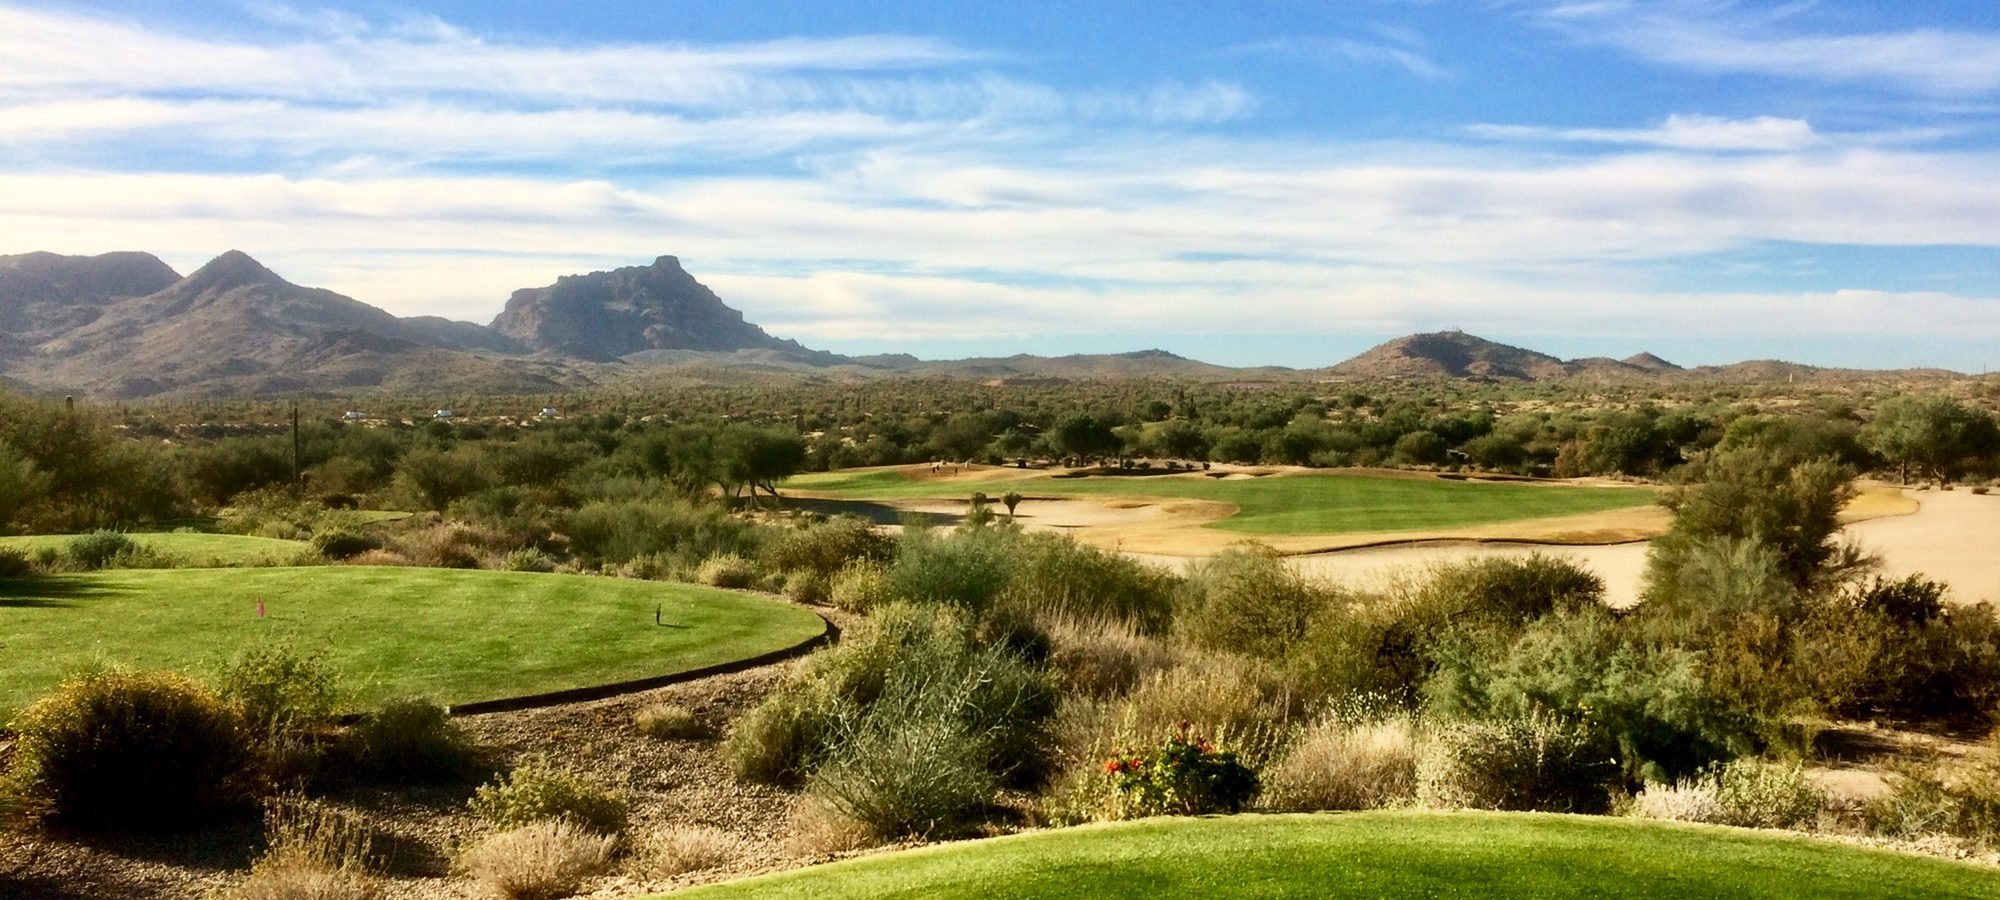 WeKoPa Cholla Course review